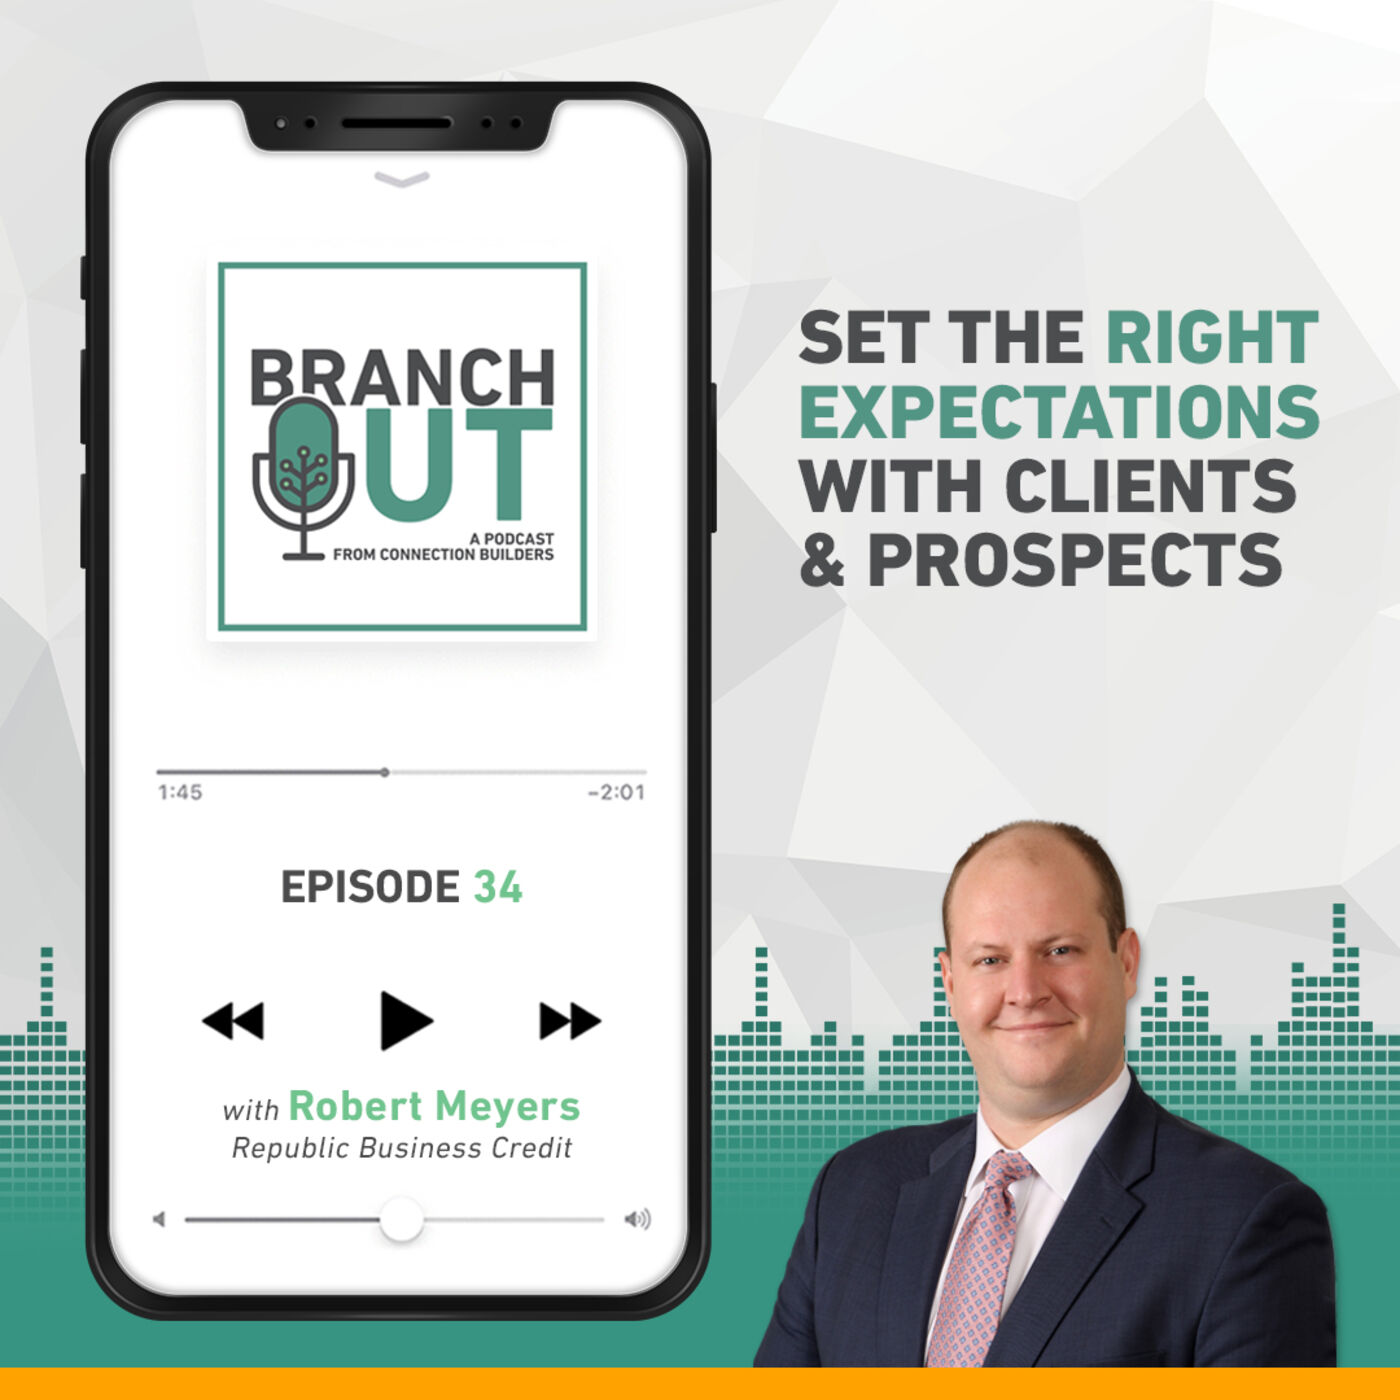 Set the Right Expectations with Clients & Prospects – Rob Meyers